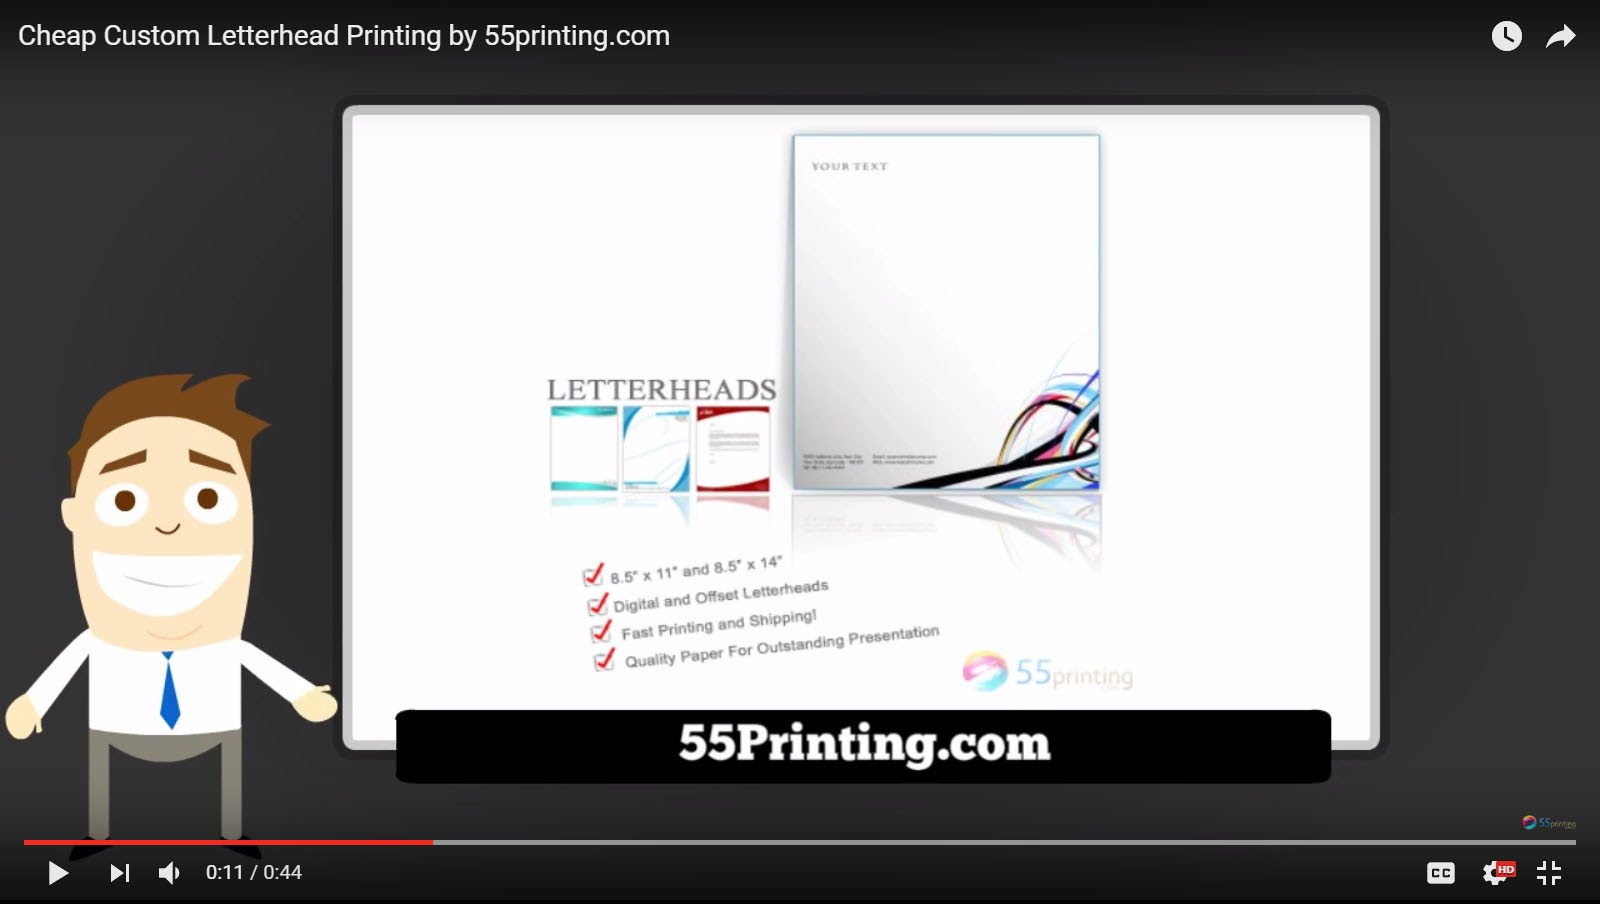 Cheap Custom Letterhead Printing by 55printing. YouTube